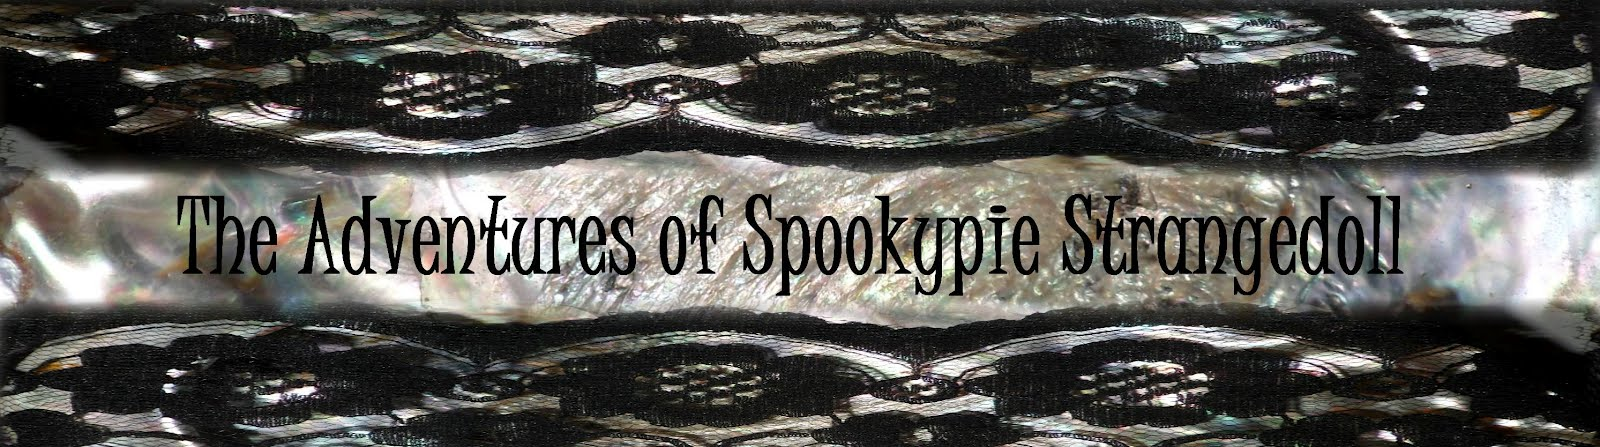 The Adventures of Spookypie Strangedoll